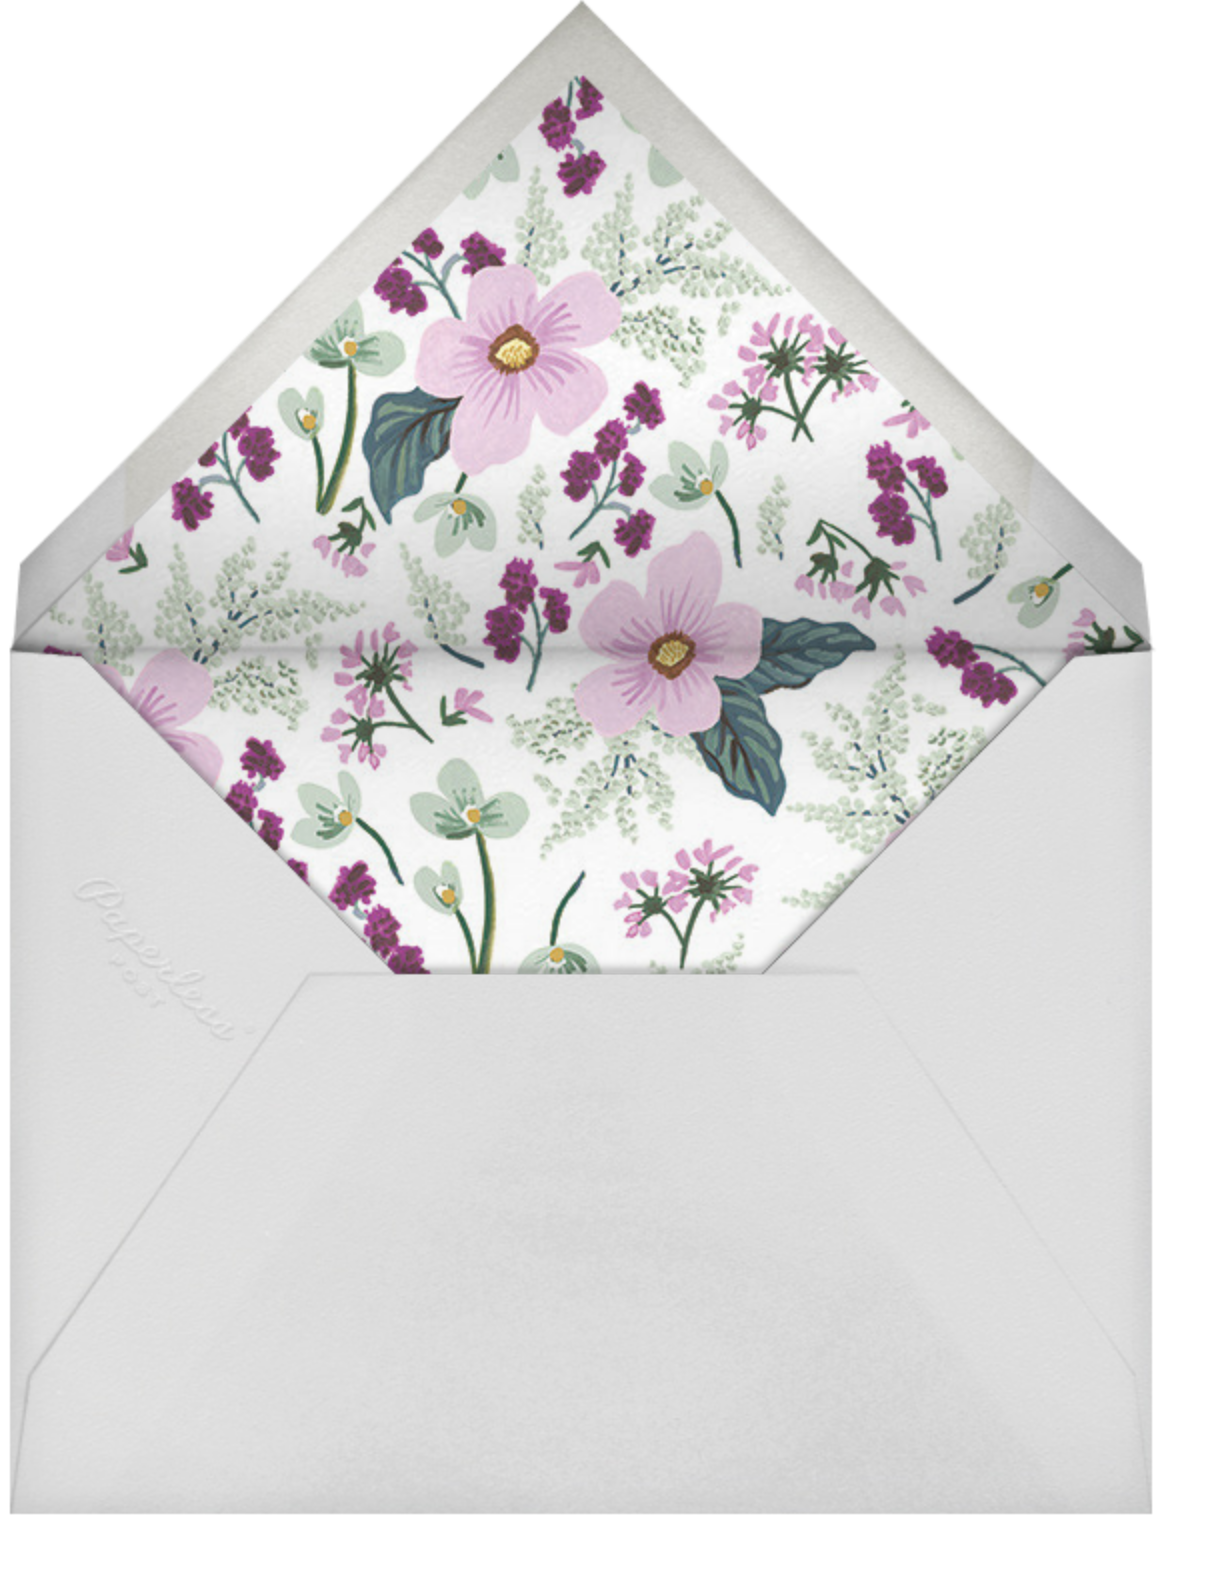 January Herbarium (Photo Announcement) - Rifle Paper Co. - Wedding - envelope back